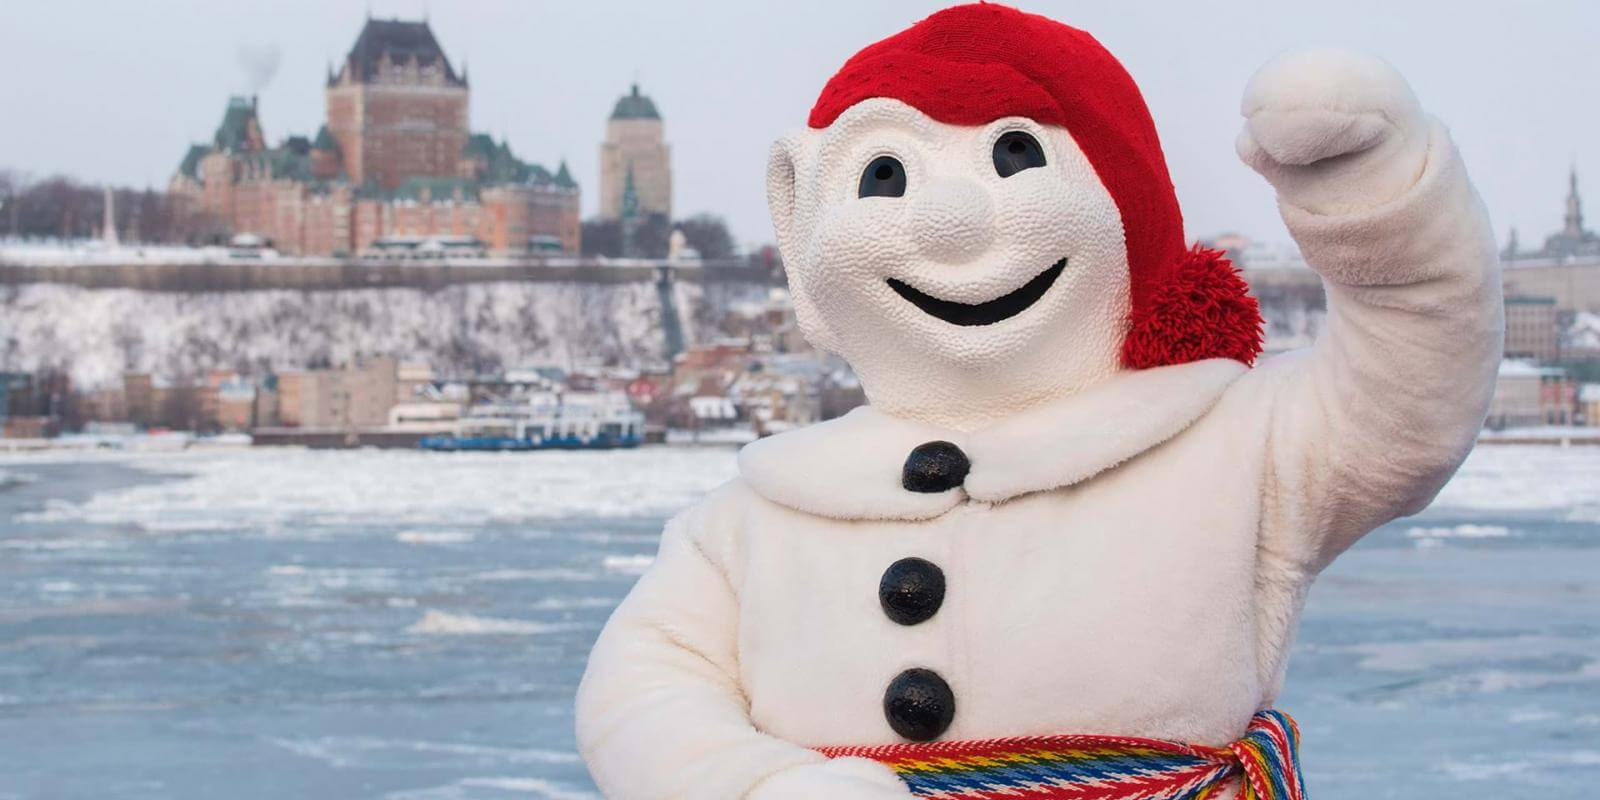 Bonhomme Carnaval proudly poses in front of the Château Frontenac, aboard the Québec-Lévis Ferry.